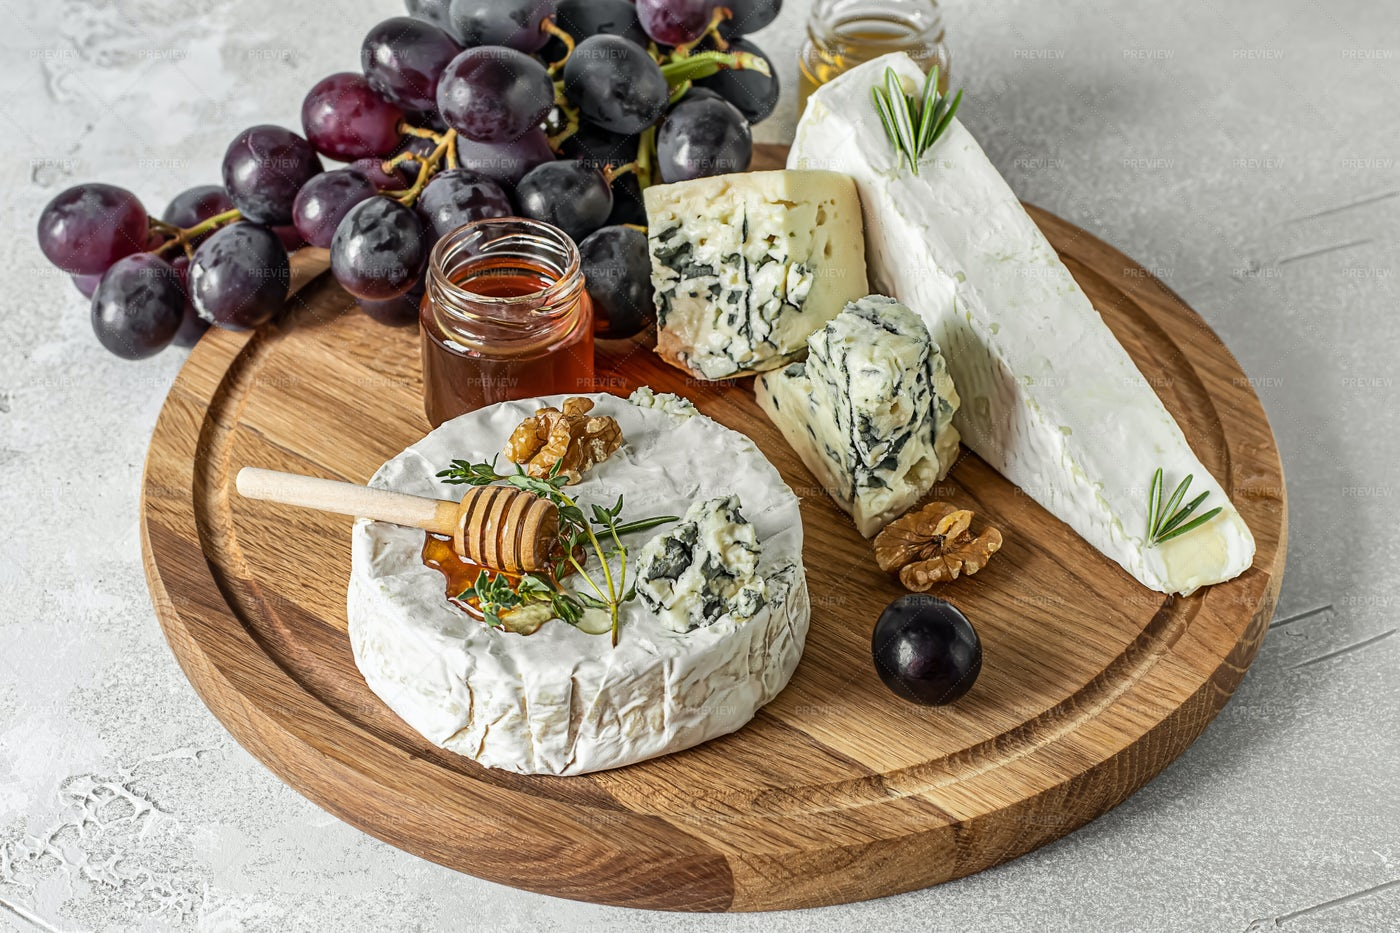 Wooden Board With French Cheese: Stock Photos